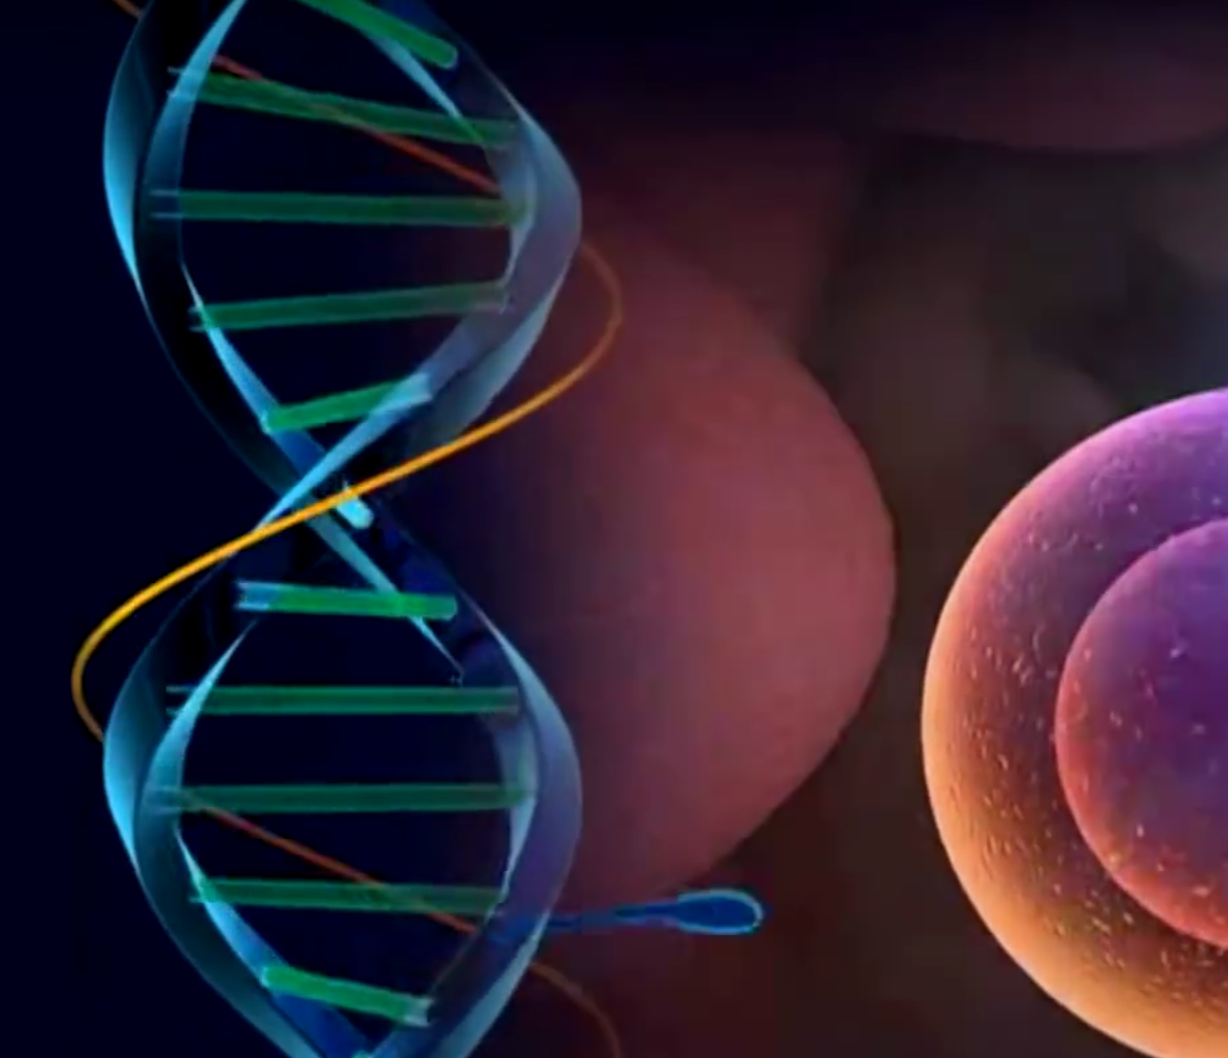 cellular structures and DNA